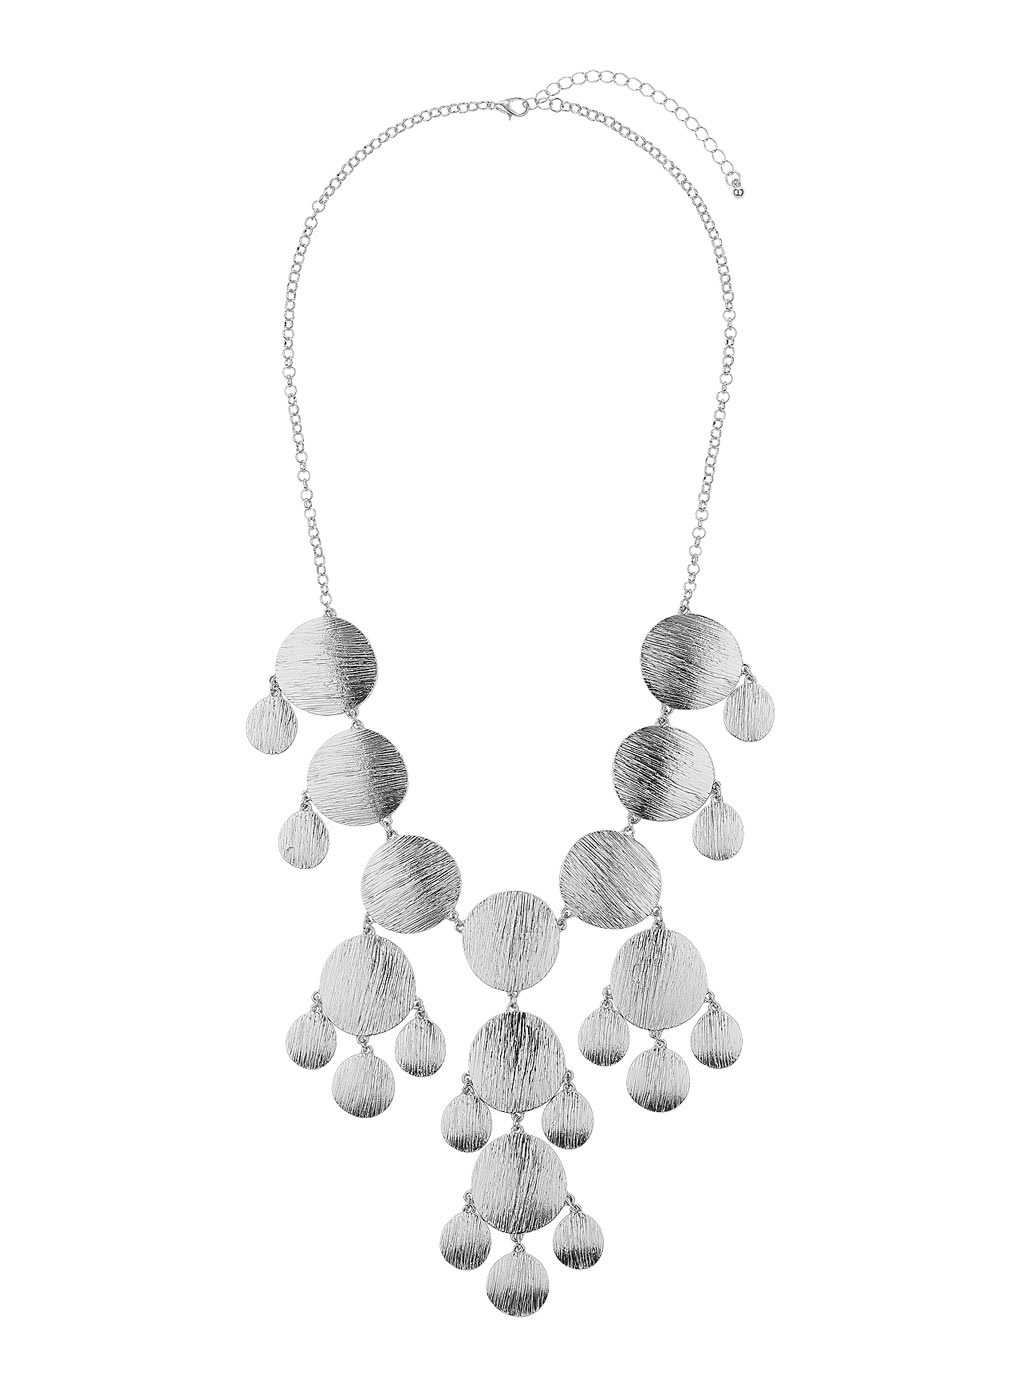 Silver Brushed Disc Necklace - predominant colour: silver; occasions: evening, occasion; length: mid; size: large/oversized; material: chain/metal; finish: metallic; style: bib/statement; season: s/s 2014